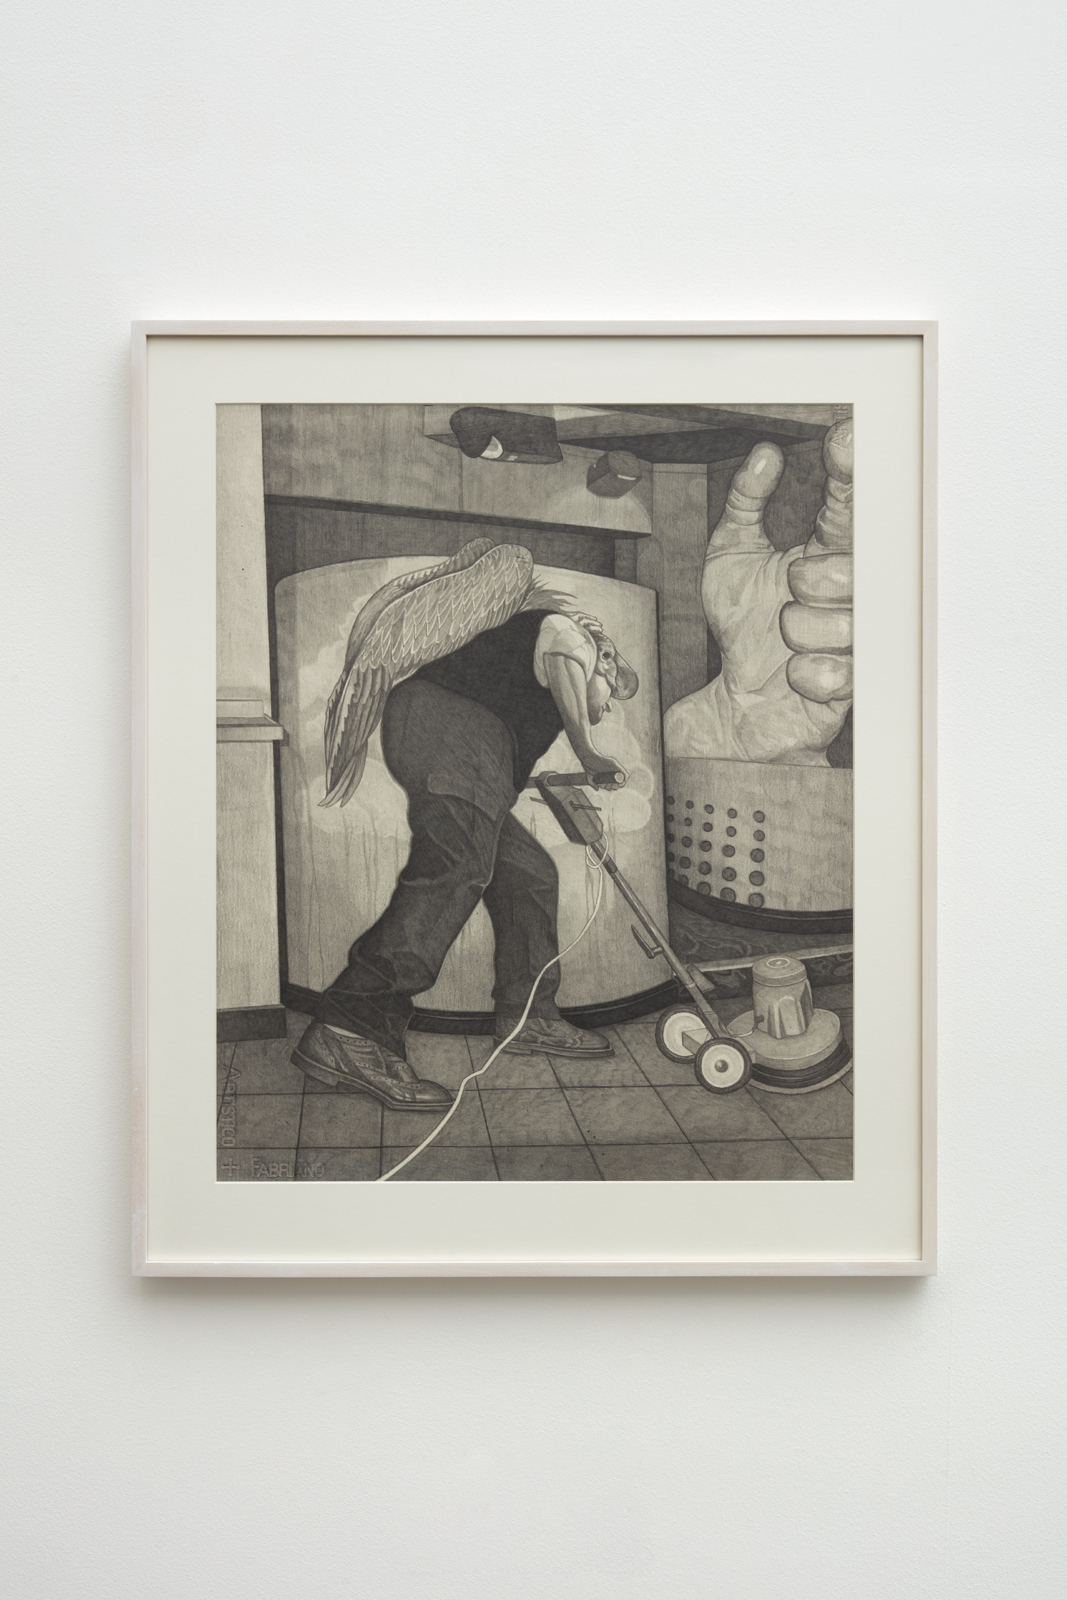 Paul Anthony Harford, Untitled (Cleaner with Vulture Wings), ca. 2002. Graphite on paper, 69.4 x 56.9 cm. © the Estate of Paul Anthony Harford. Photo by Robert Glowacki. Courtesy Sadie Coles HQ, London